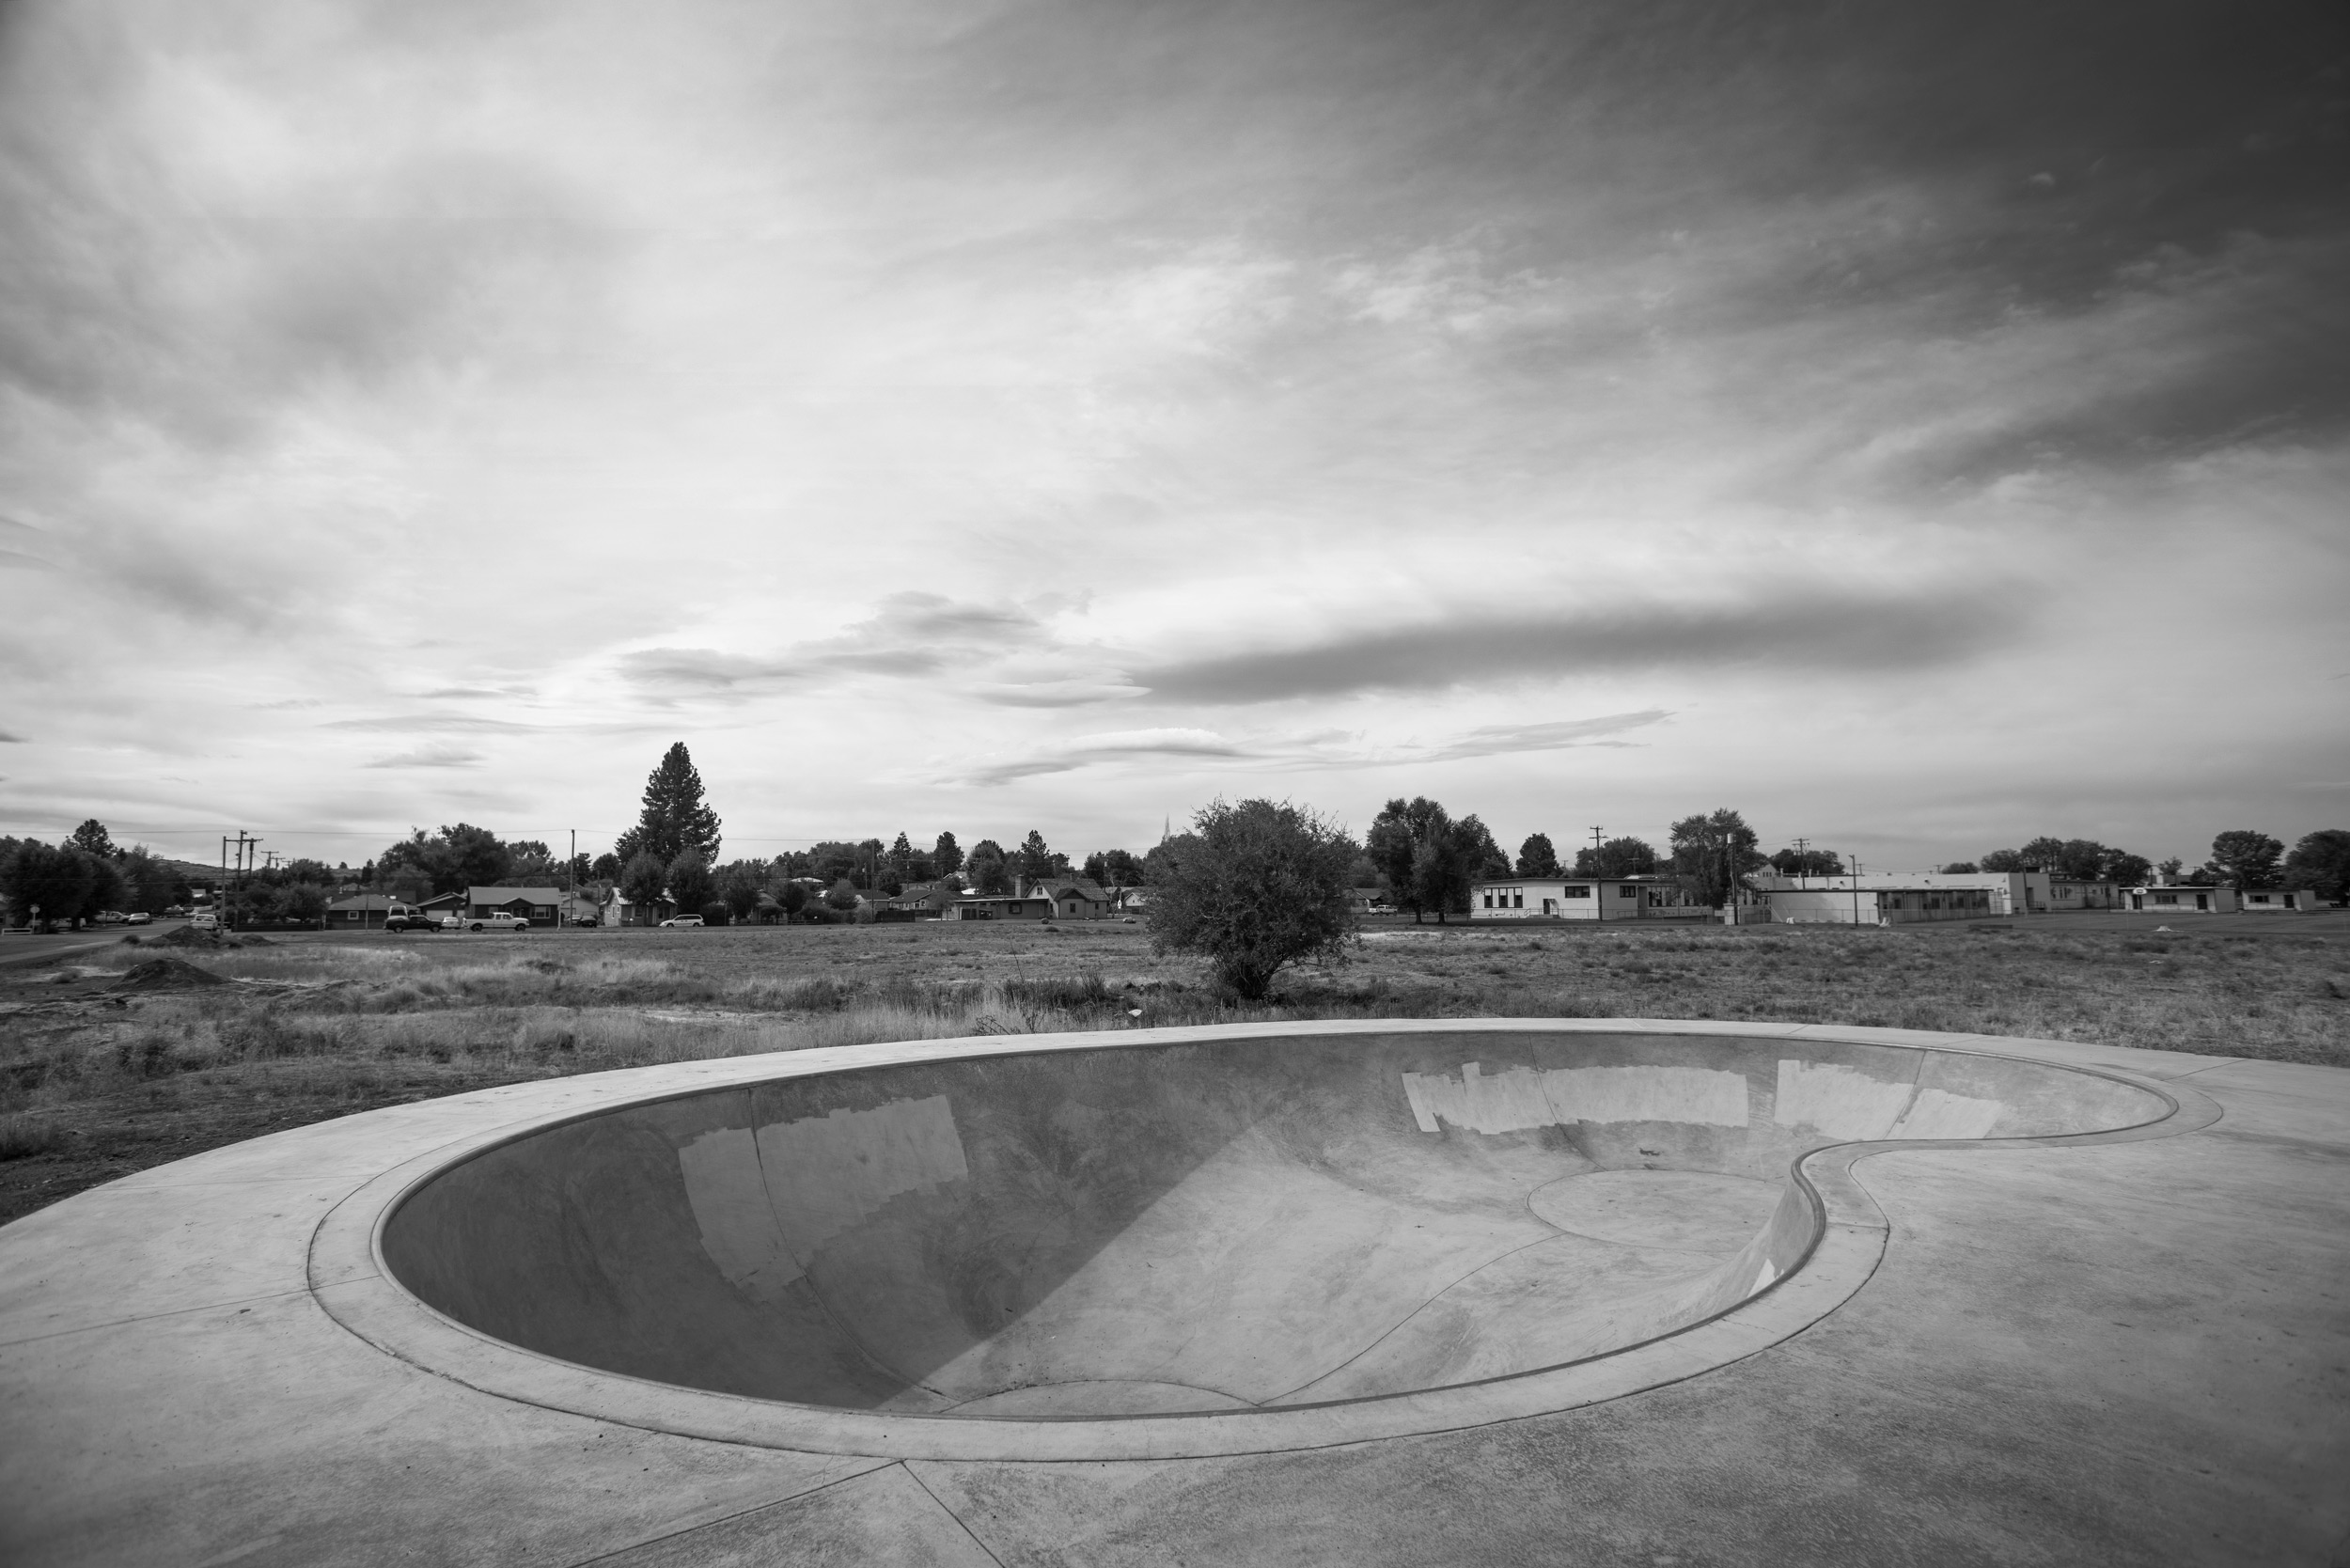 Roadtripping_MiddleOfNowhere_SkateParkProject_Park30_Retouched